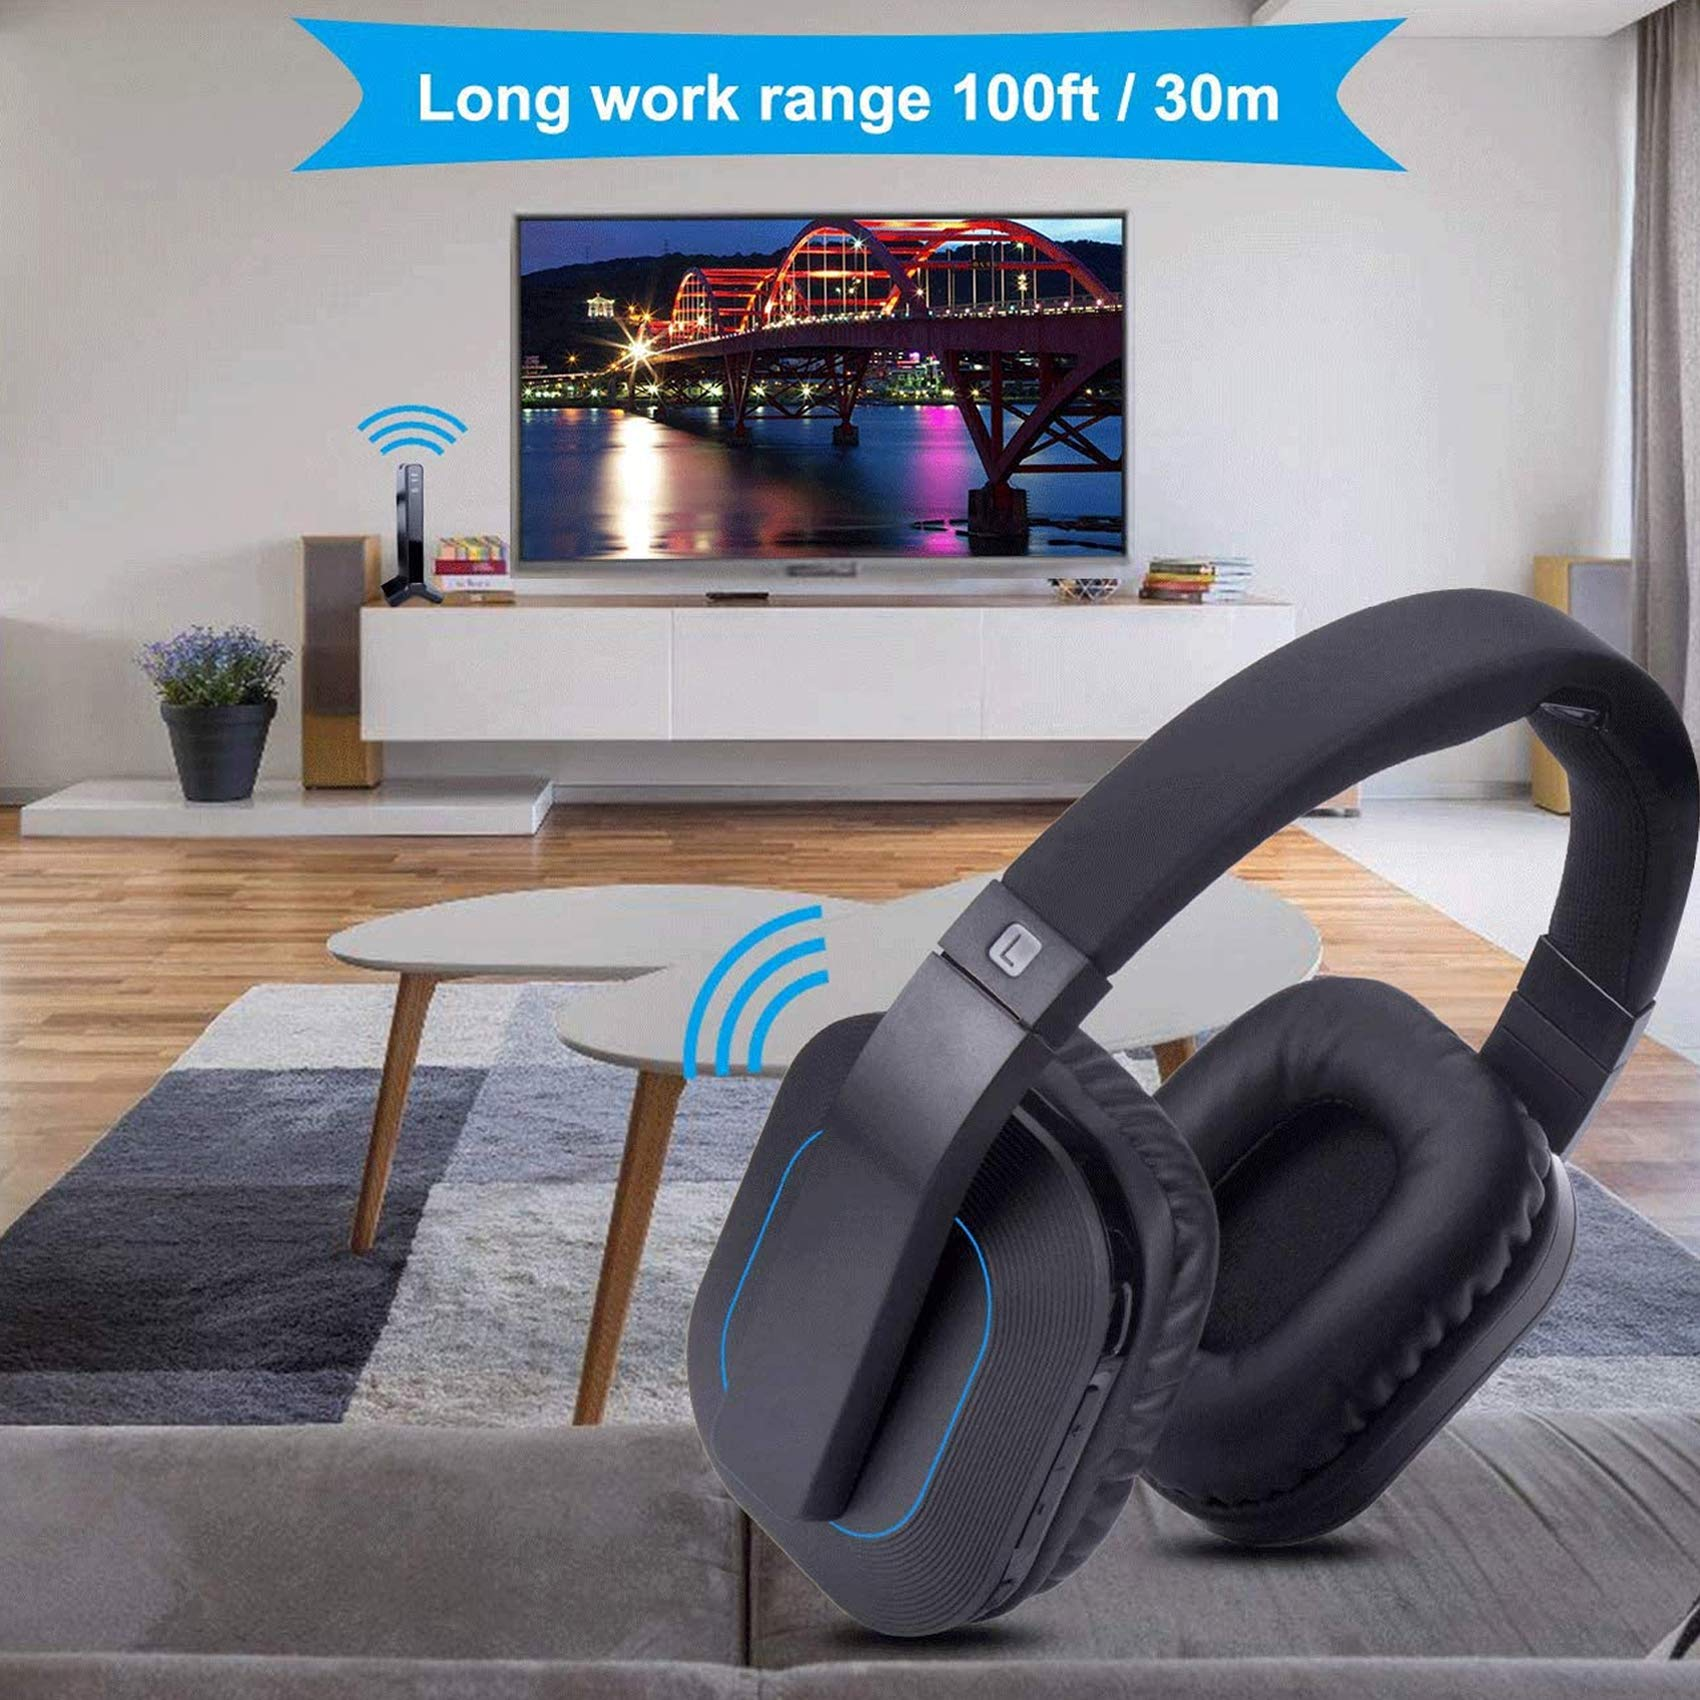 ARTISTE Wireless Headphones for Smart TV Watching with Transmitter Charging Dock, Digital Optical System, High Volume Headset Ideal for Seniors/Hearing Impaired, 100 Foot Wireless Range No Audio Delay